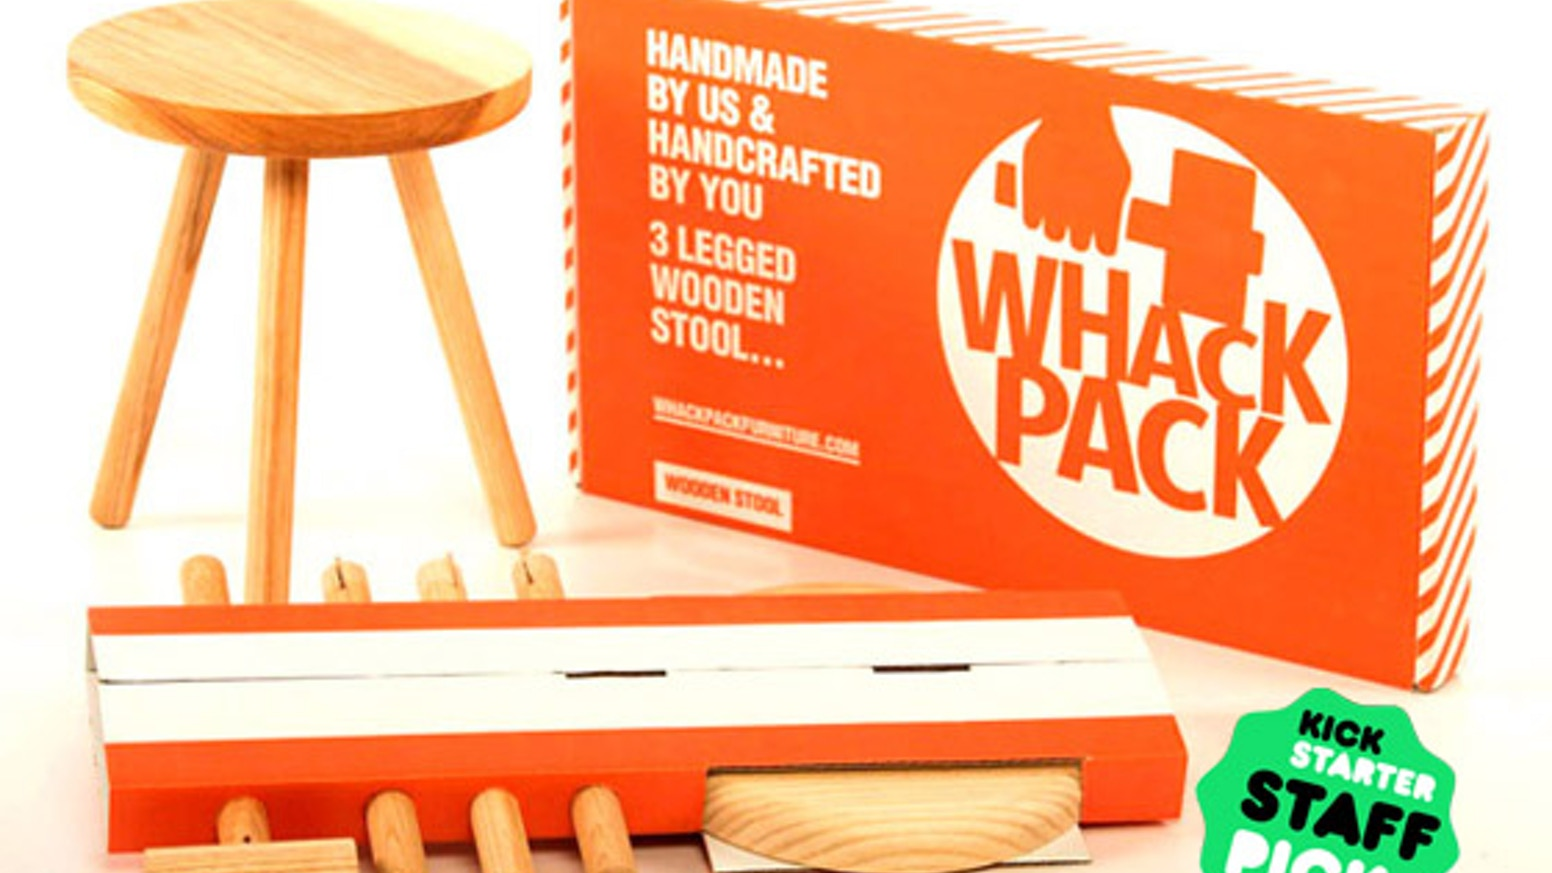 Flatpack furniture driving you nuts? Us too. We have a simple, elegant, satisfying solution you'll love! Welcome to Whackpack Furniture!